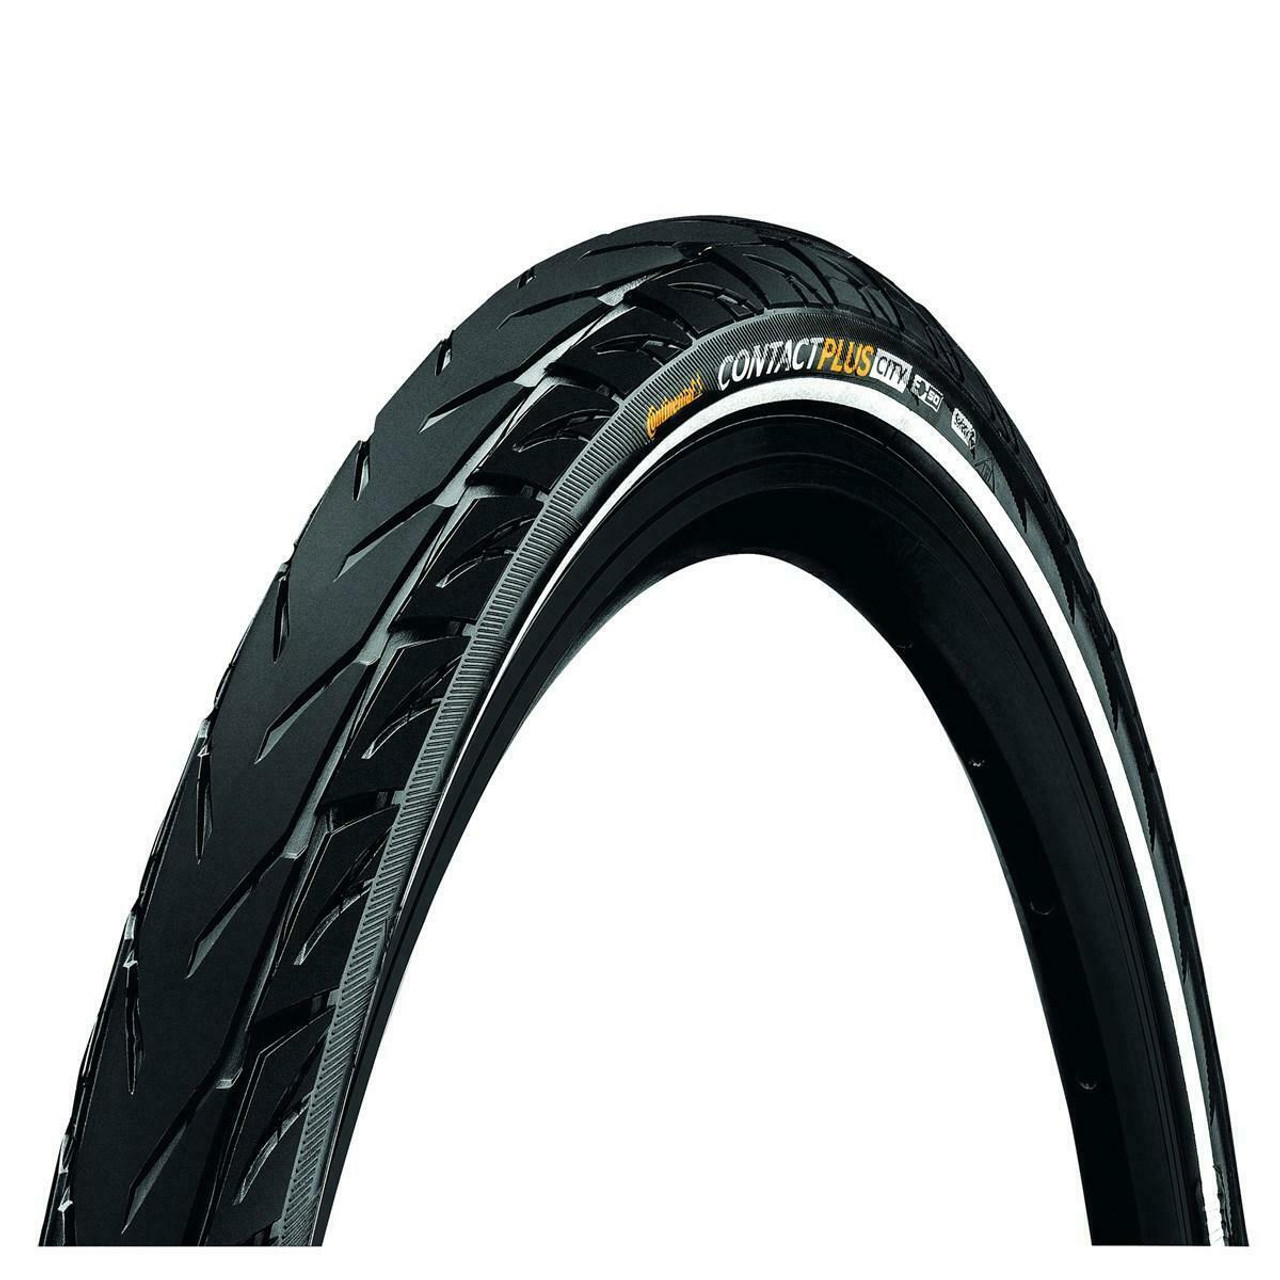 Continental Contact Plus City/Trekking Wired E -Bike Ready Tyre in Black/Reflex All Sizes